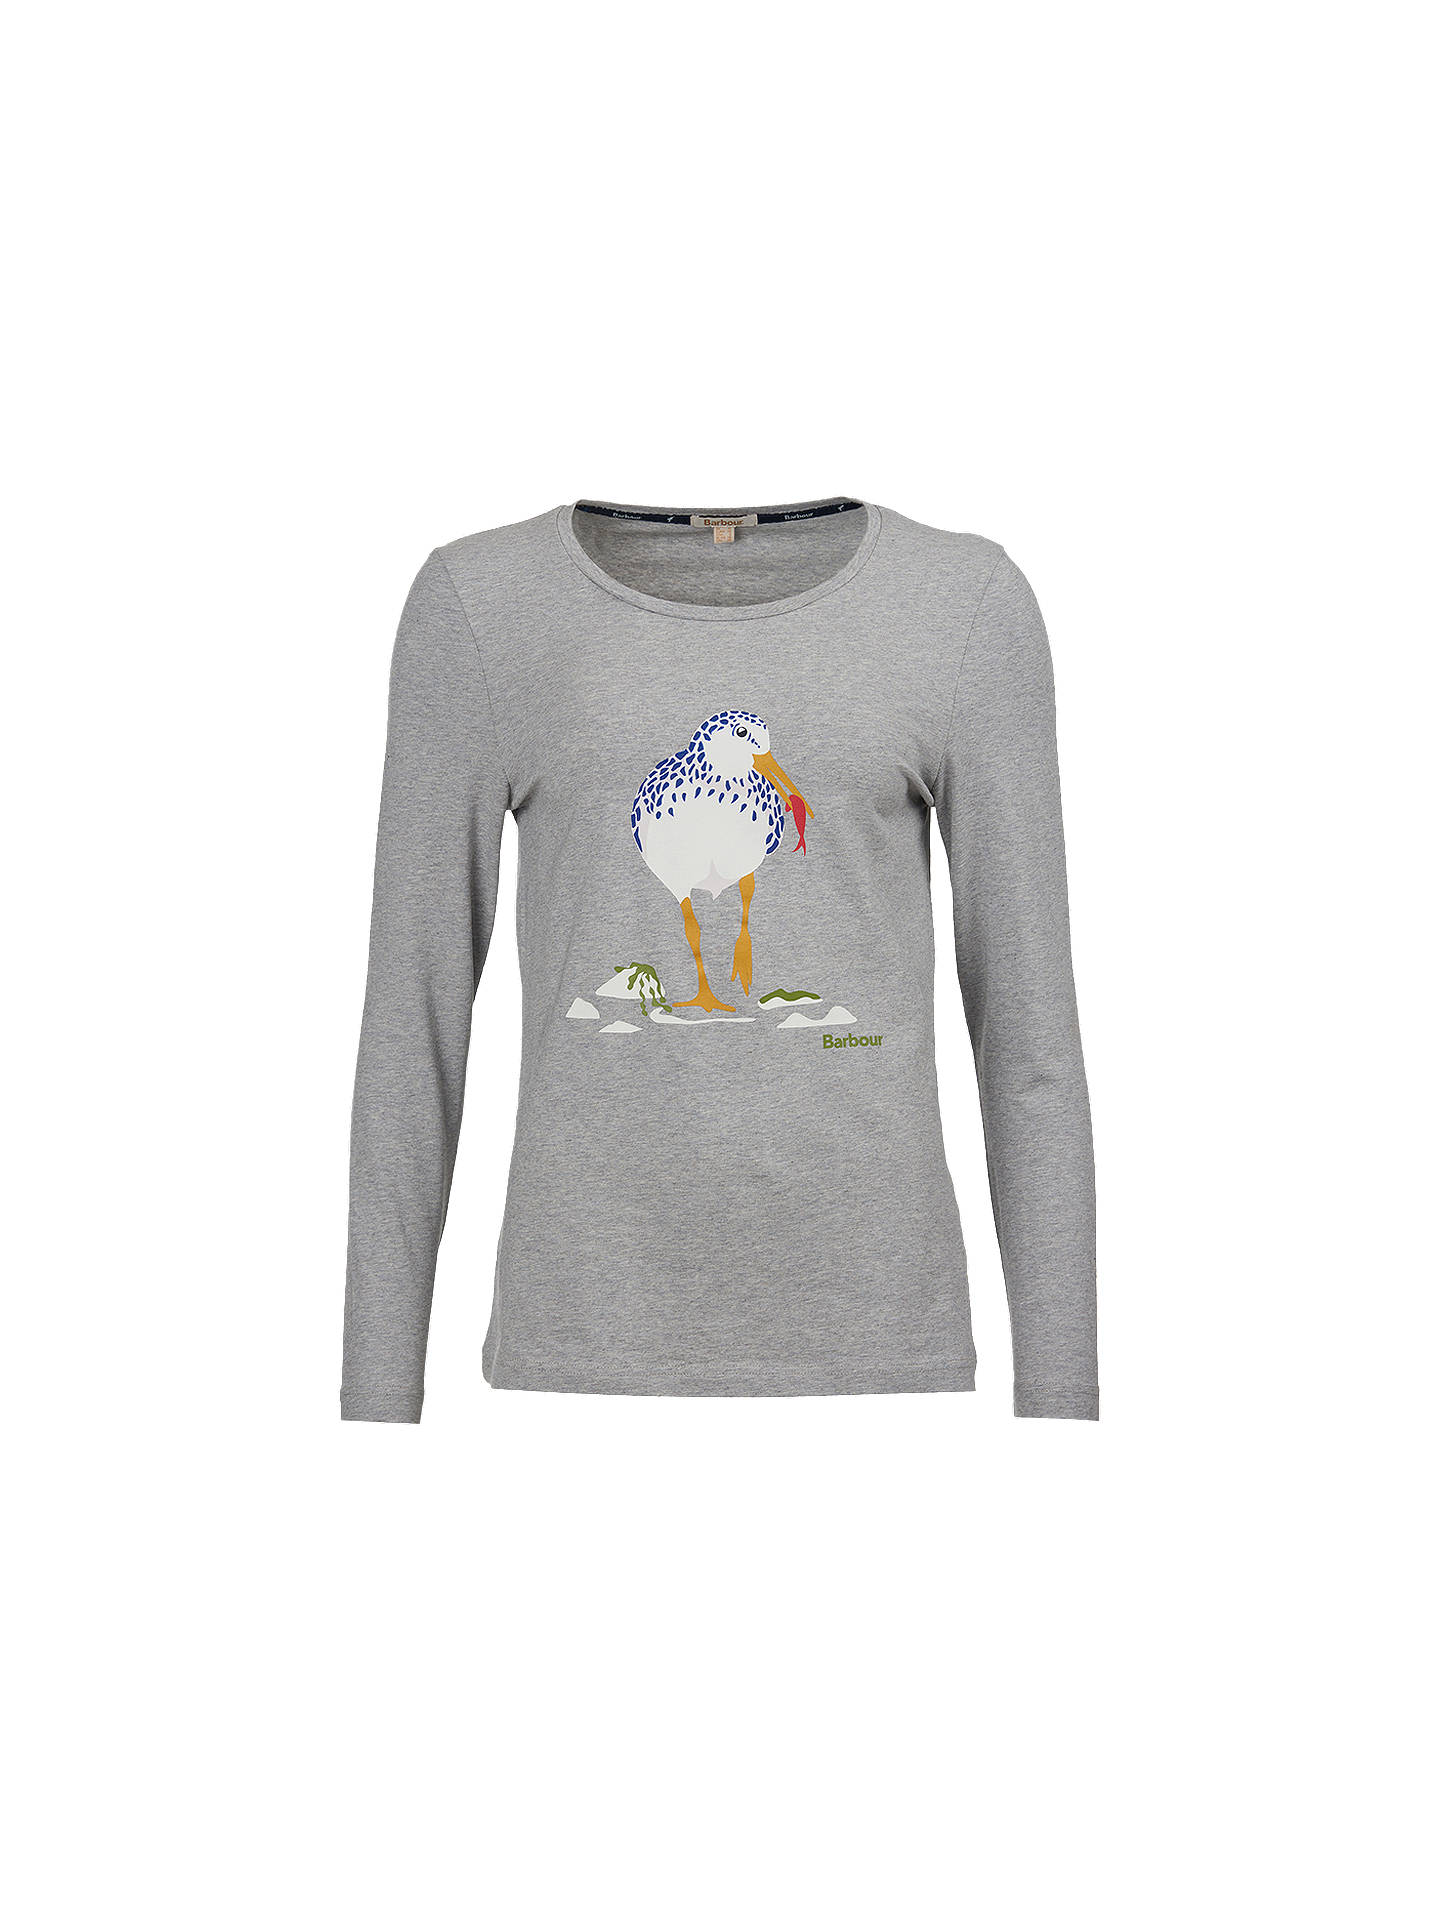 BuyBarbour Coastal Boscombe Seagull Print T-Shirt, Grey Marl, 8 Online at johnlewis.com